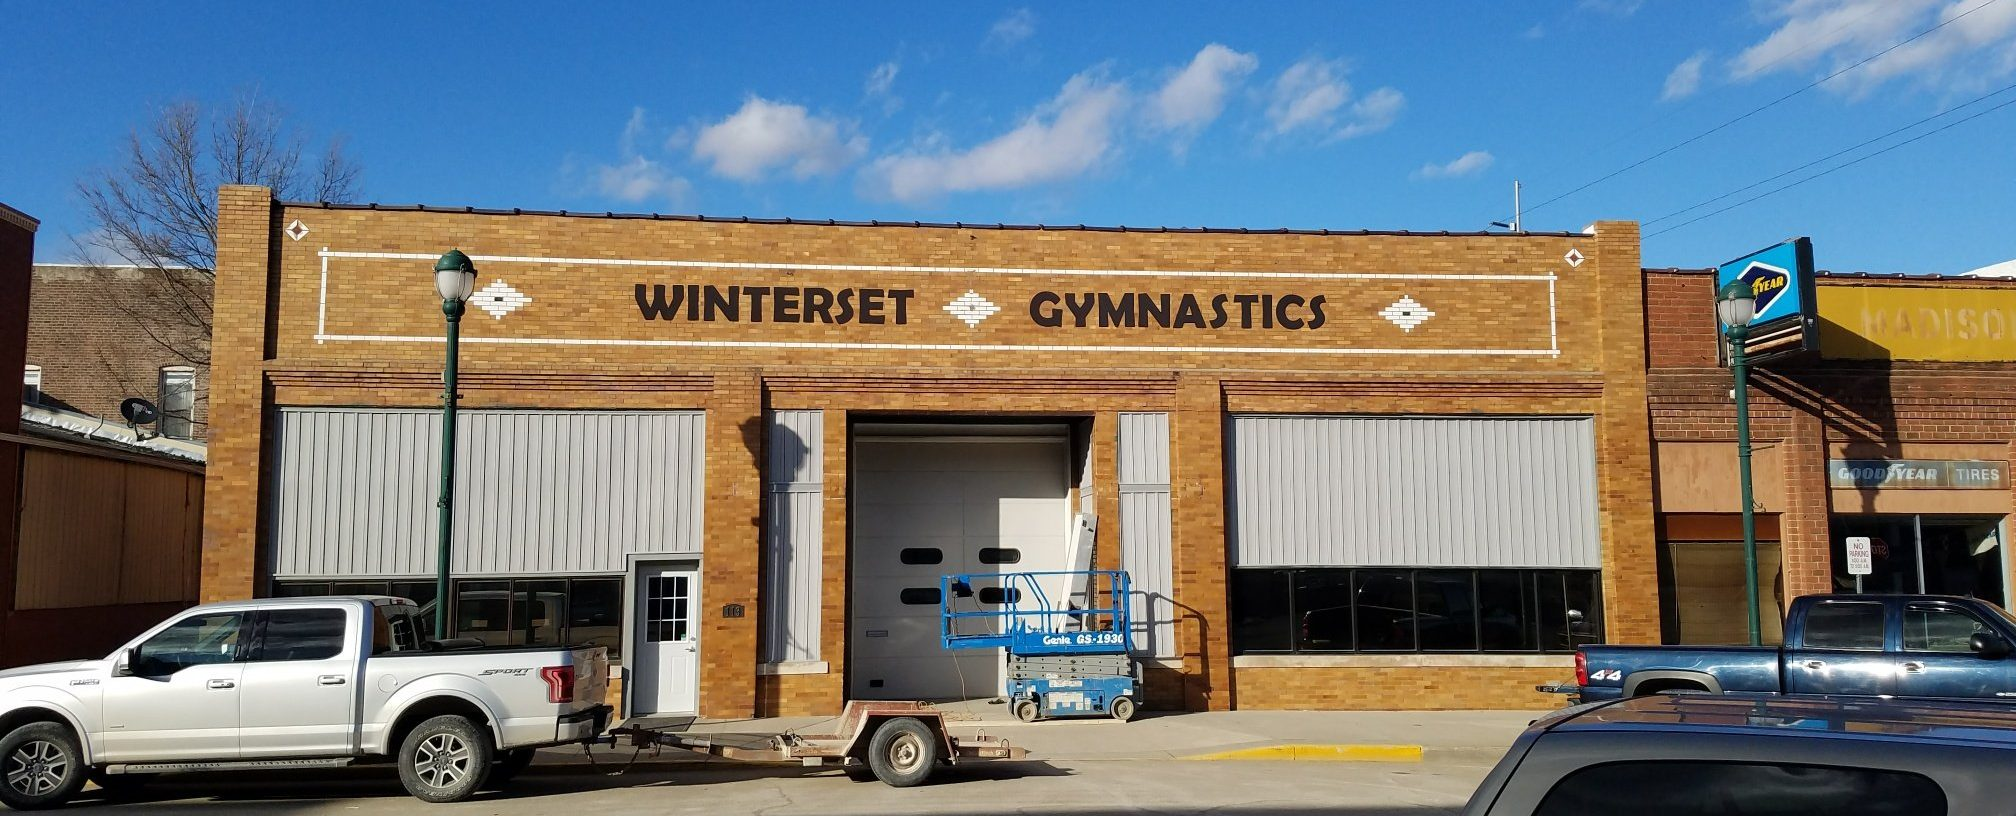 PEC team sticks the landing with new sign for Winterset Gymnastics